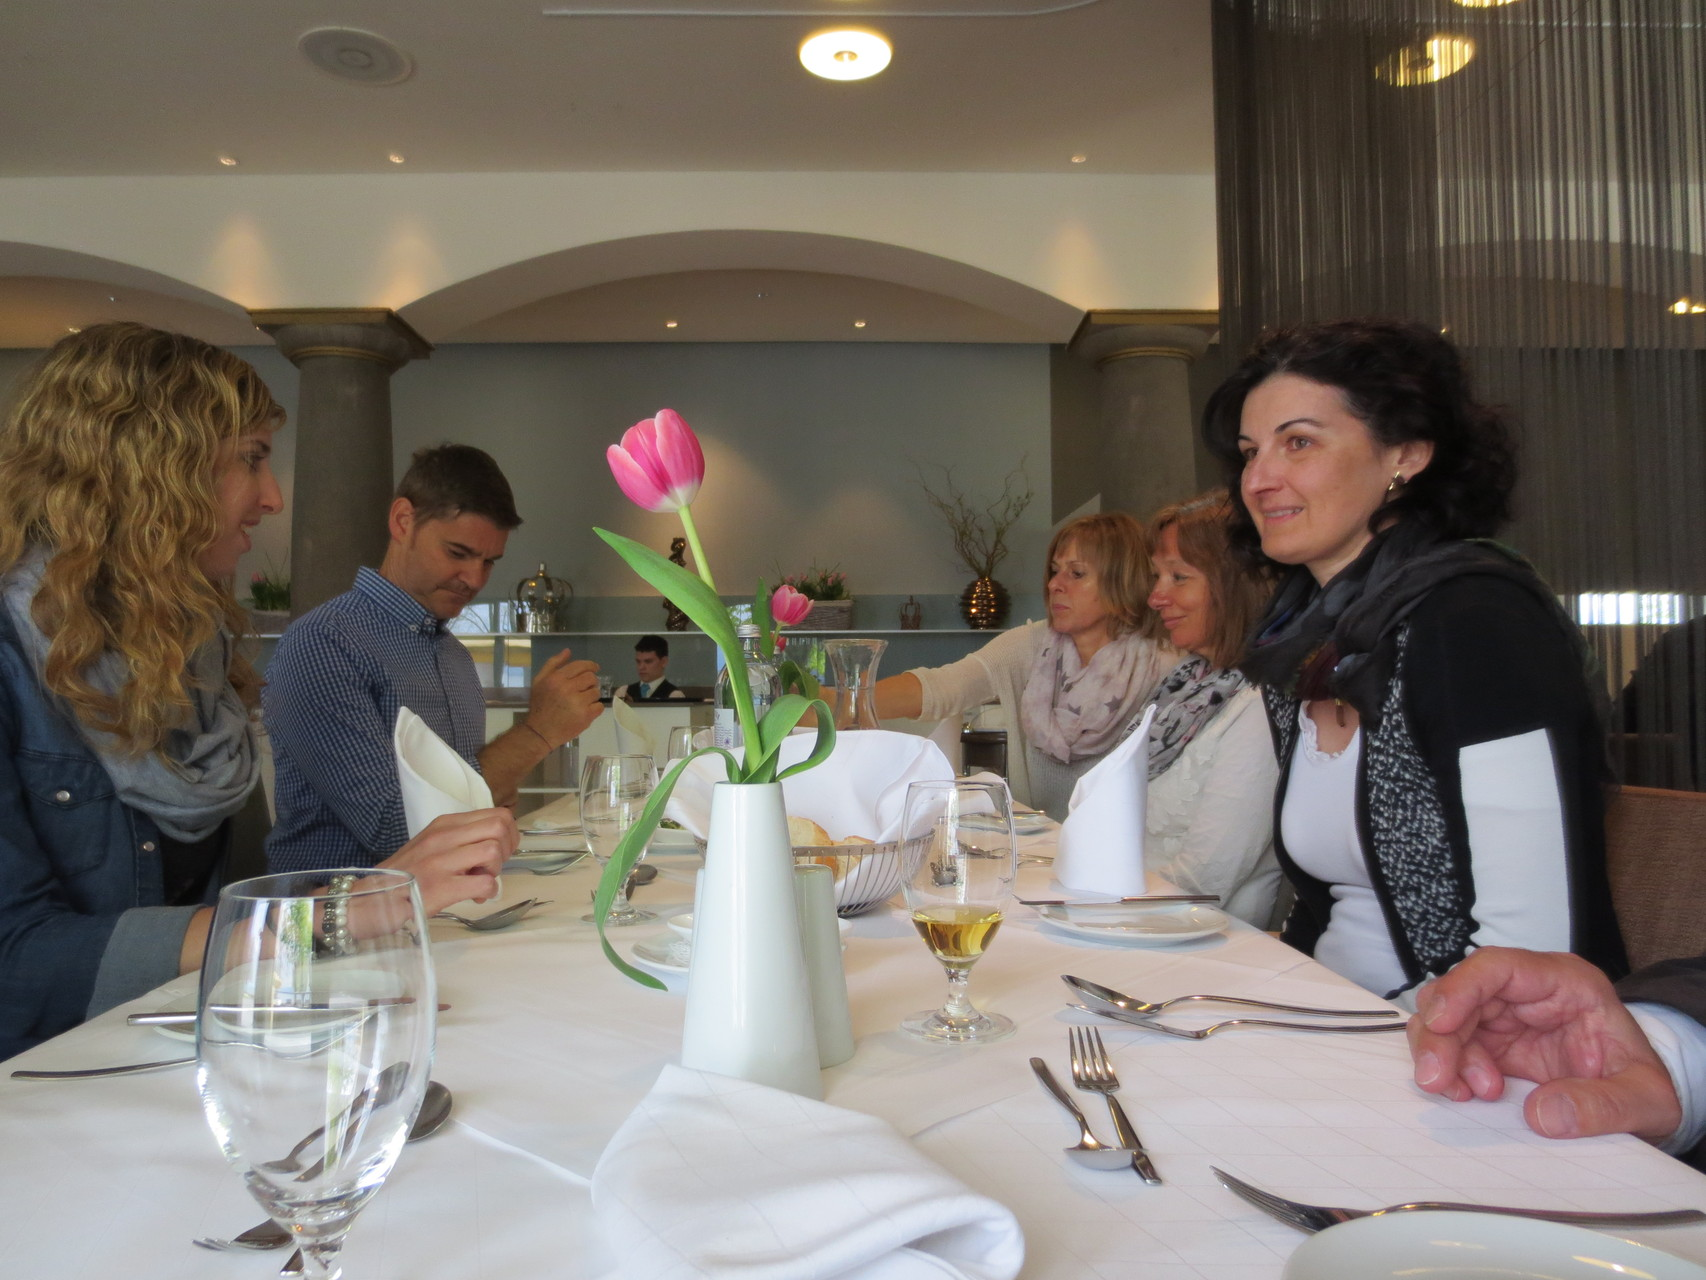 Impressionen vom VDSV-Business-Lunch im Sentido Seehotel am Kaiserstrand